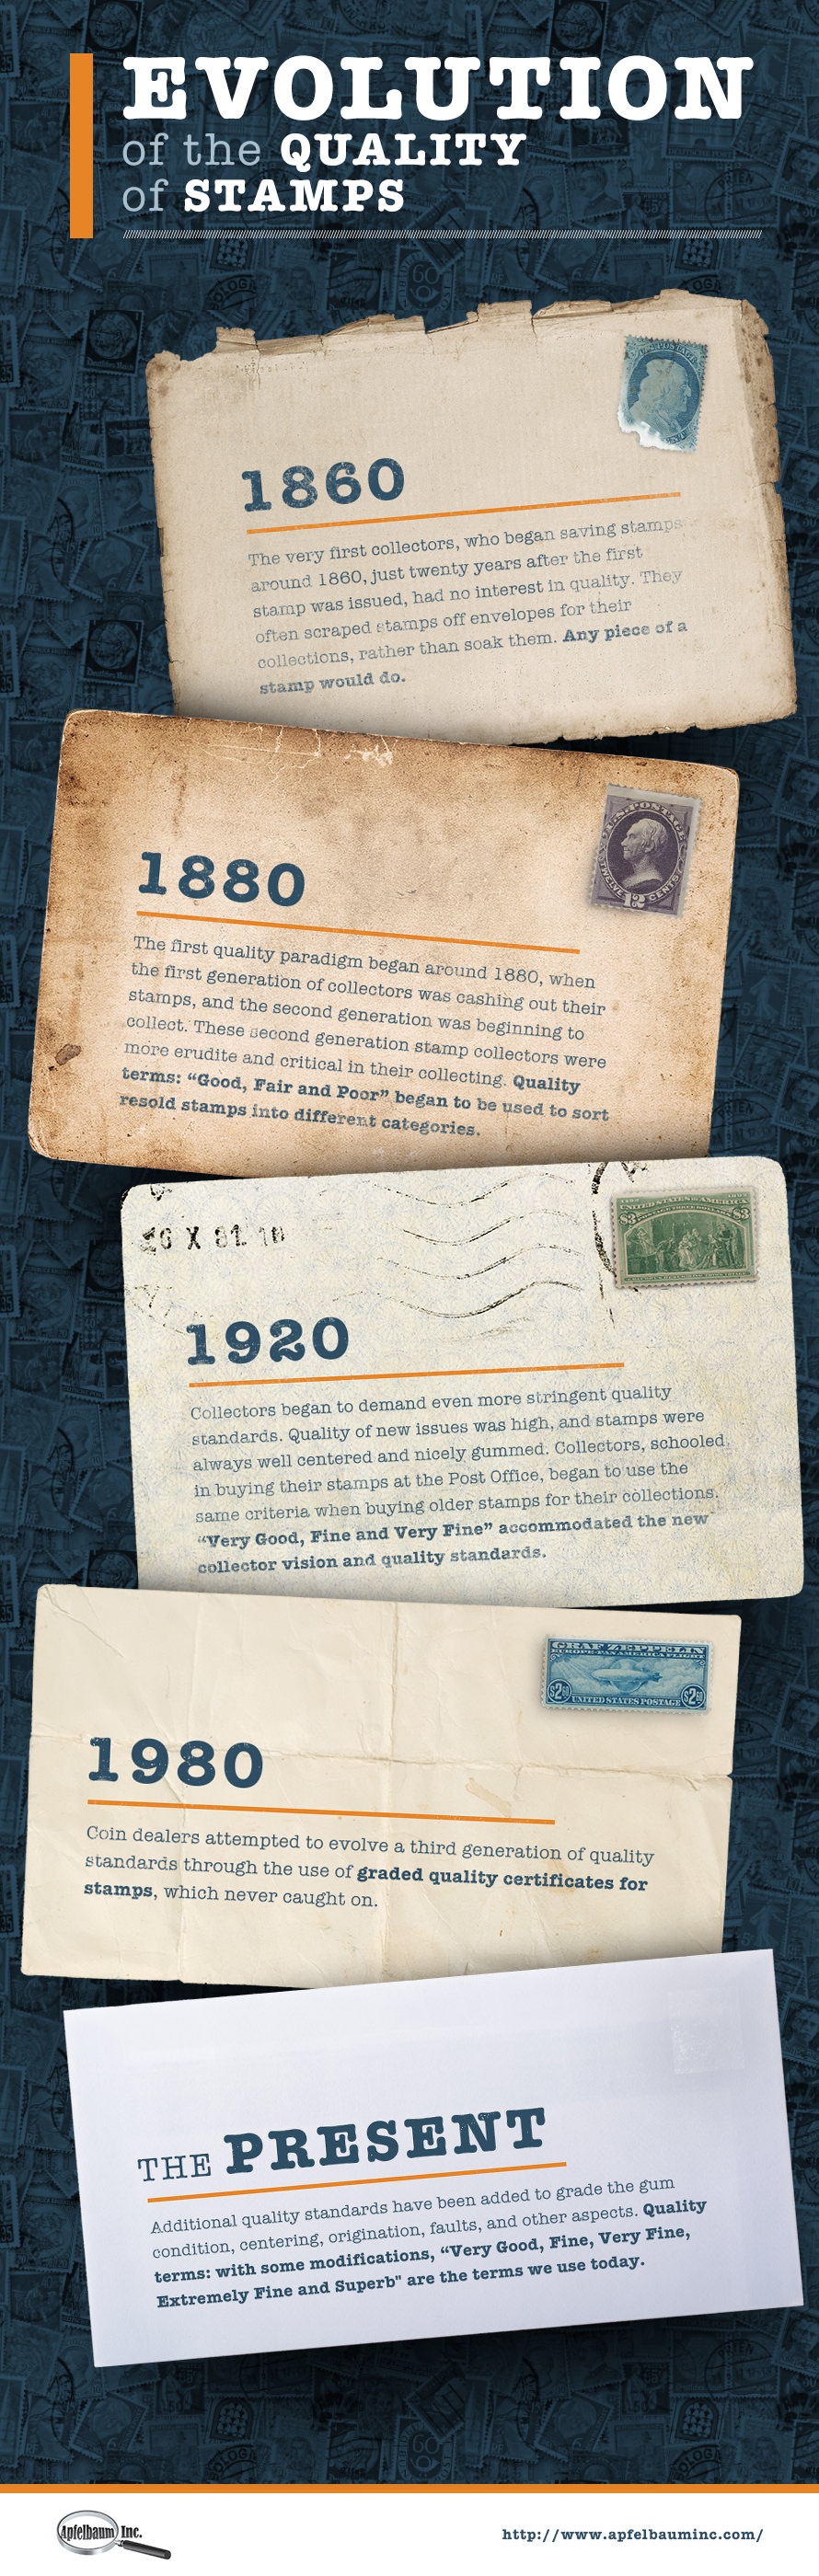 Evolution of Stamp Quality